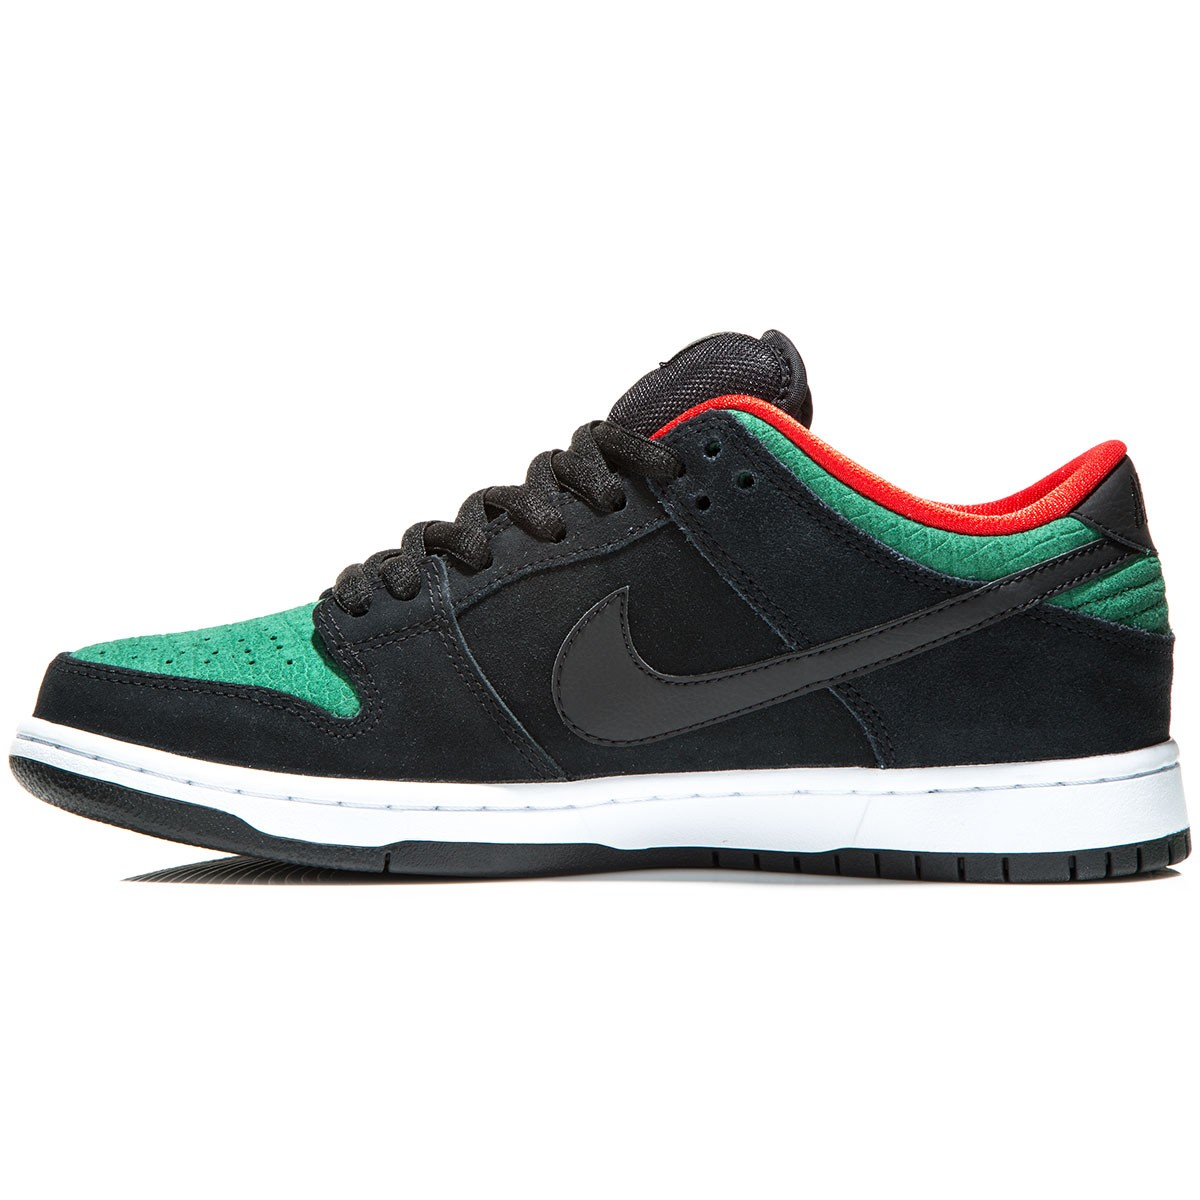 sports shoes 8b37f 79d0d Nike SB Dunk Low Pro Shoes - BlackGorge GreenRed - 6.0